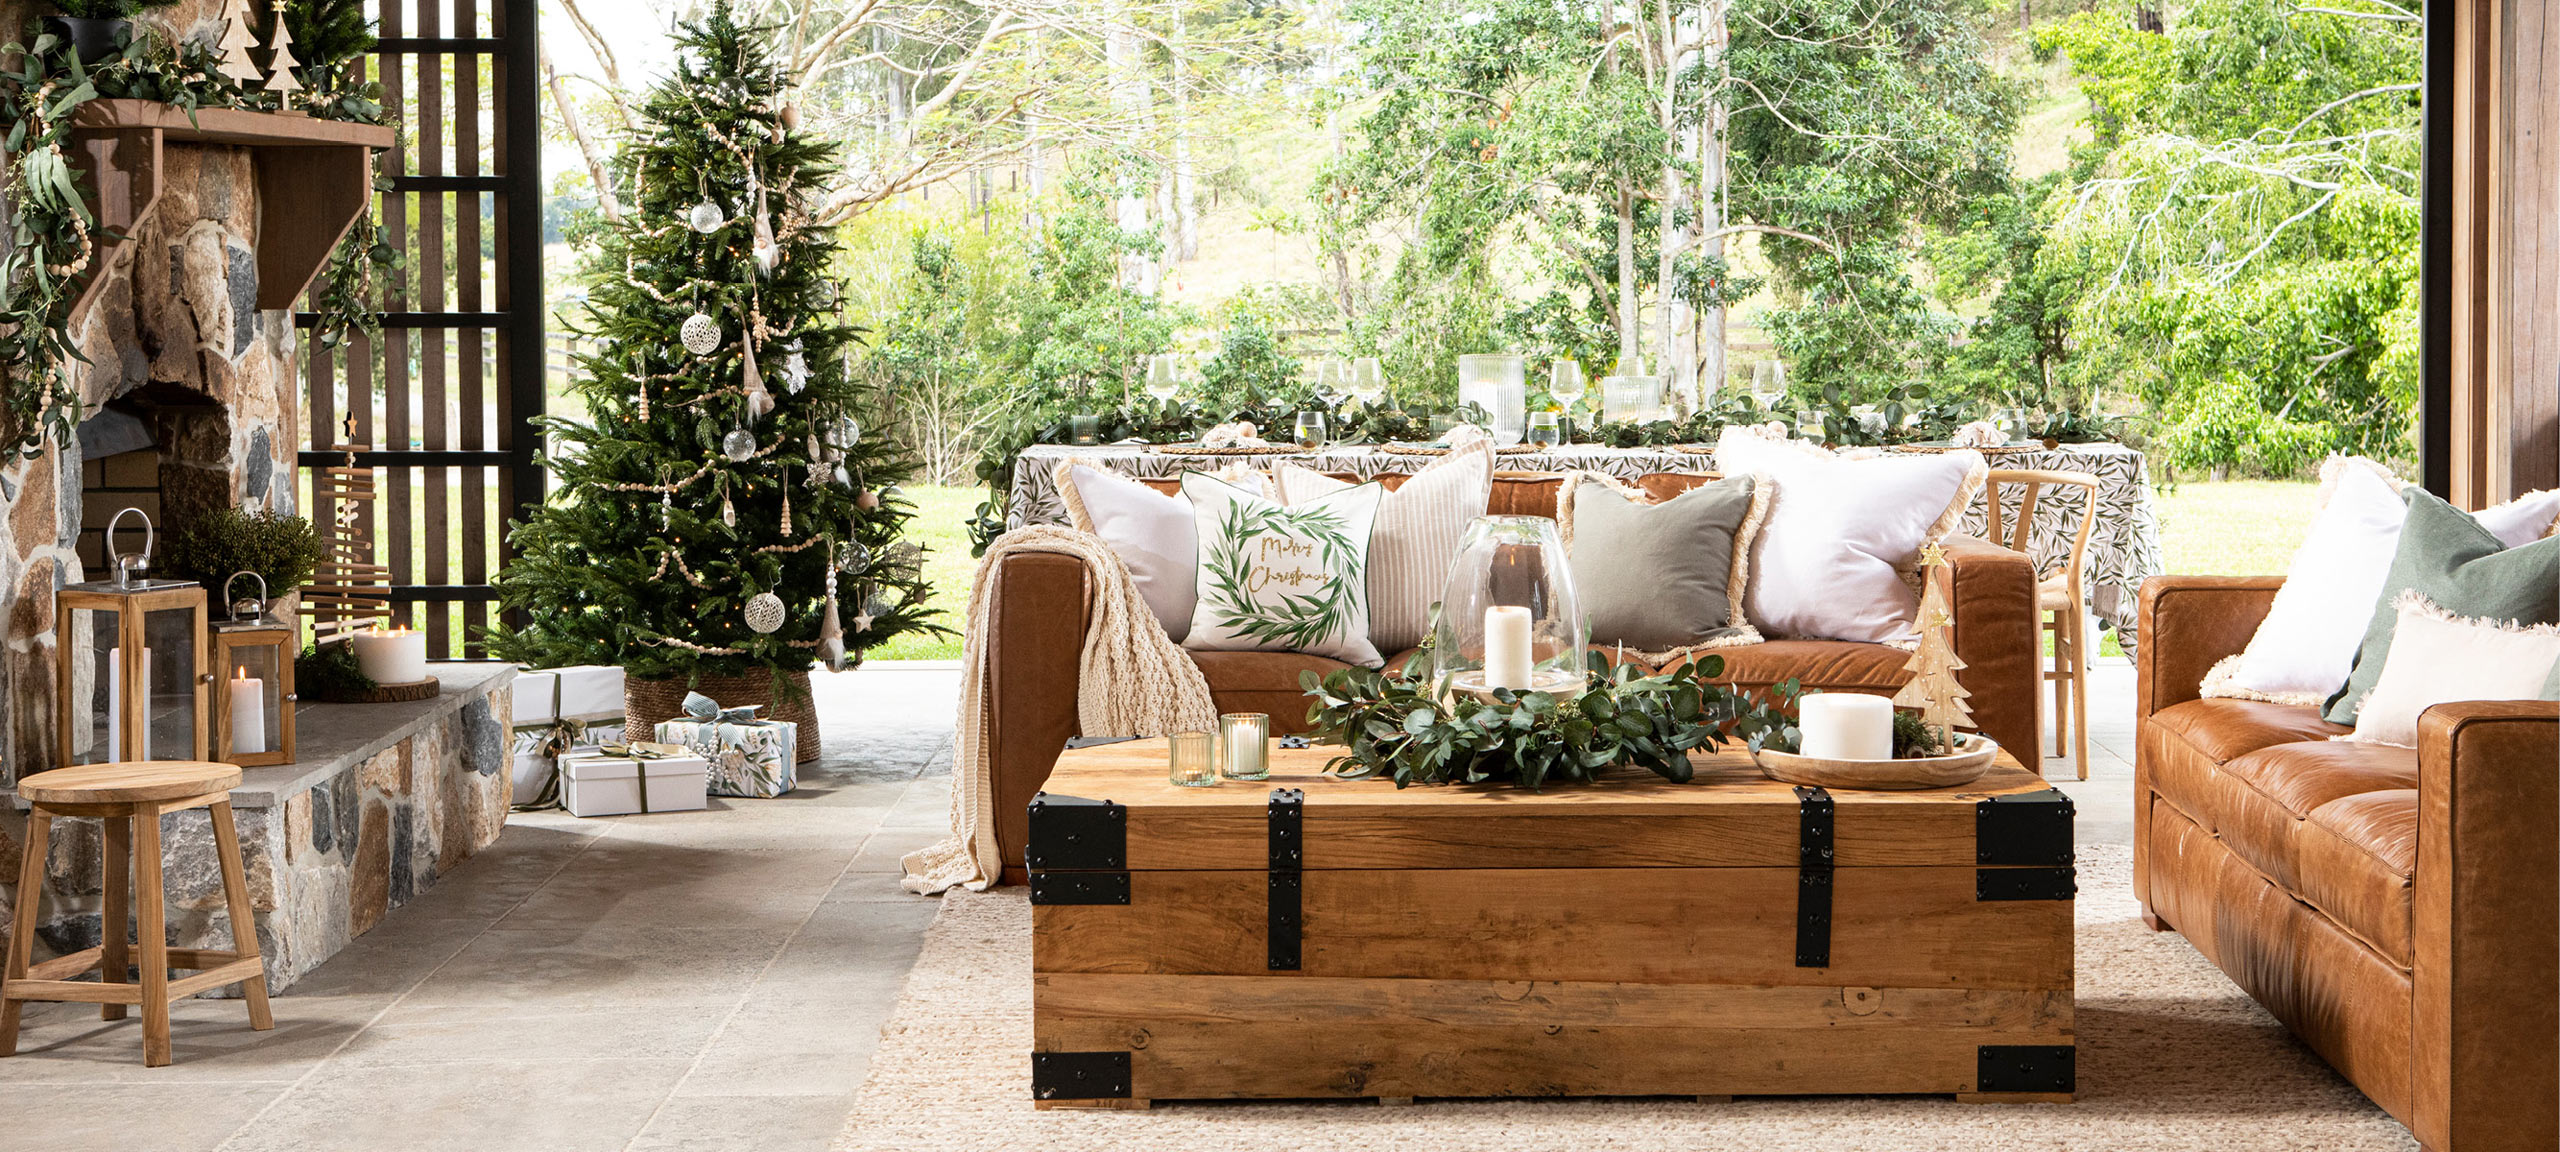 Christmas styled room with tree and cushions